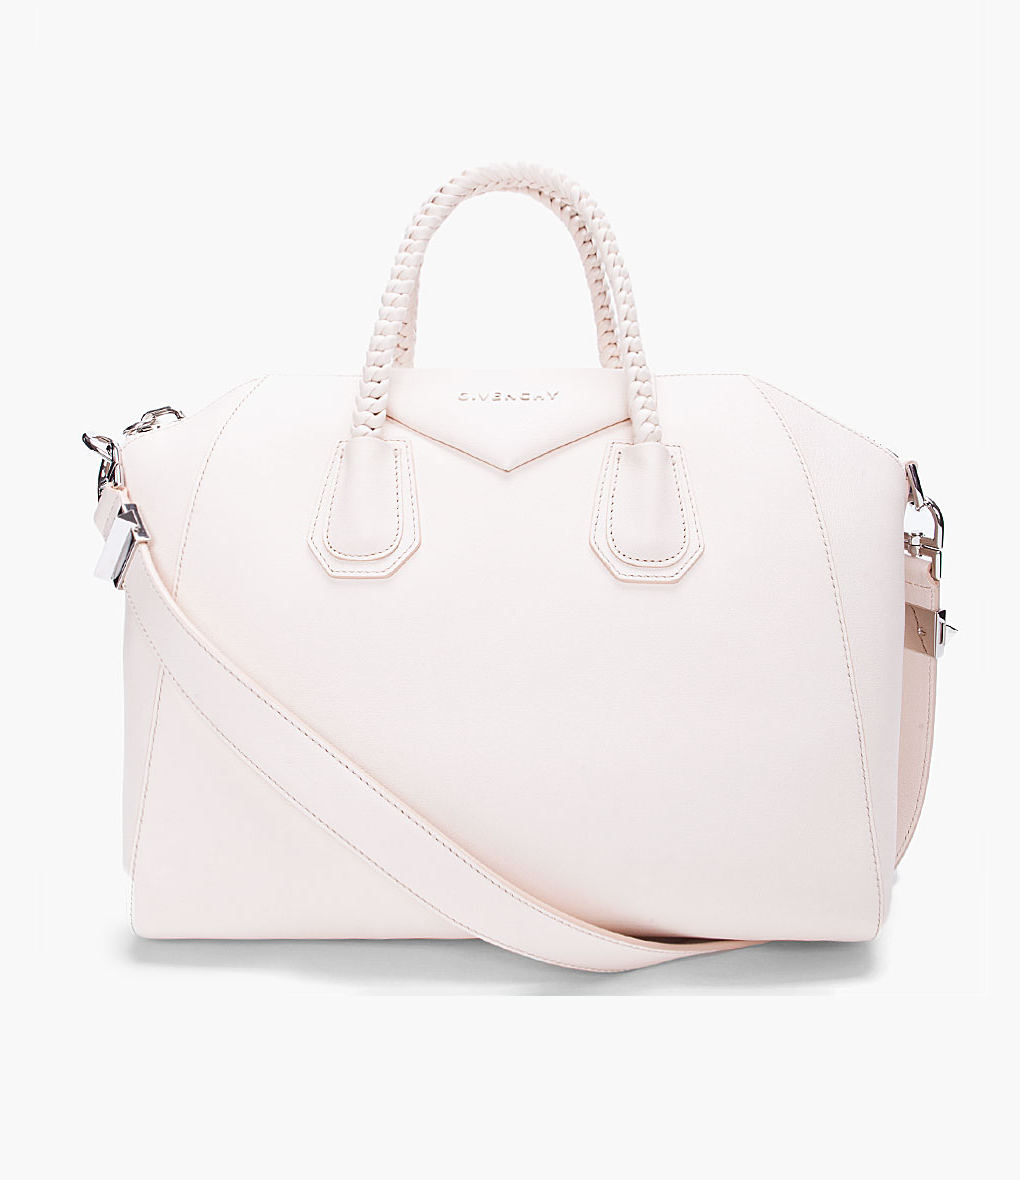 GIVENCHY // IVORY TONE MEDIUM ANTIGONA TOTE